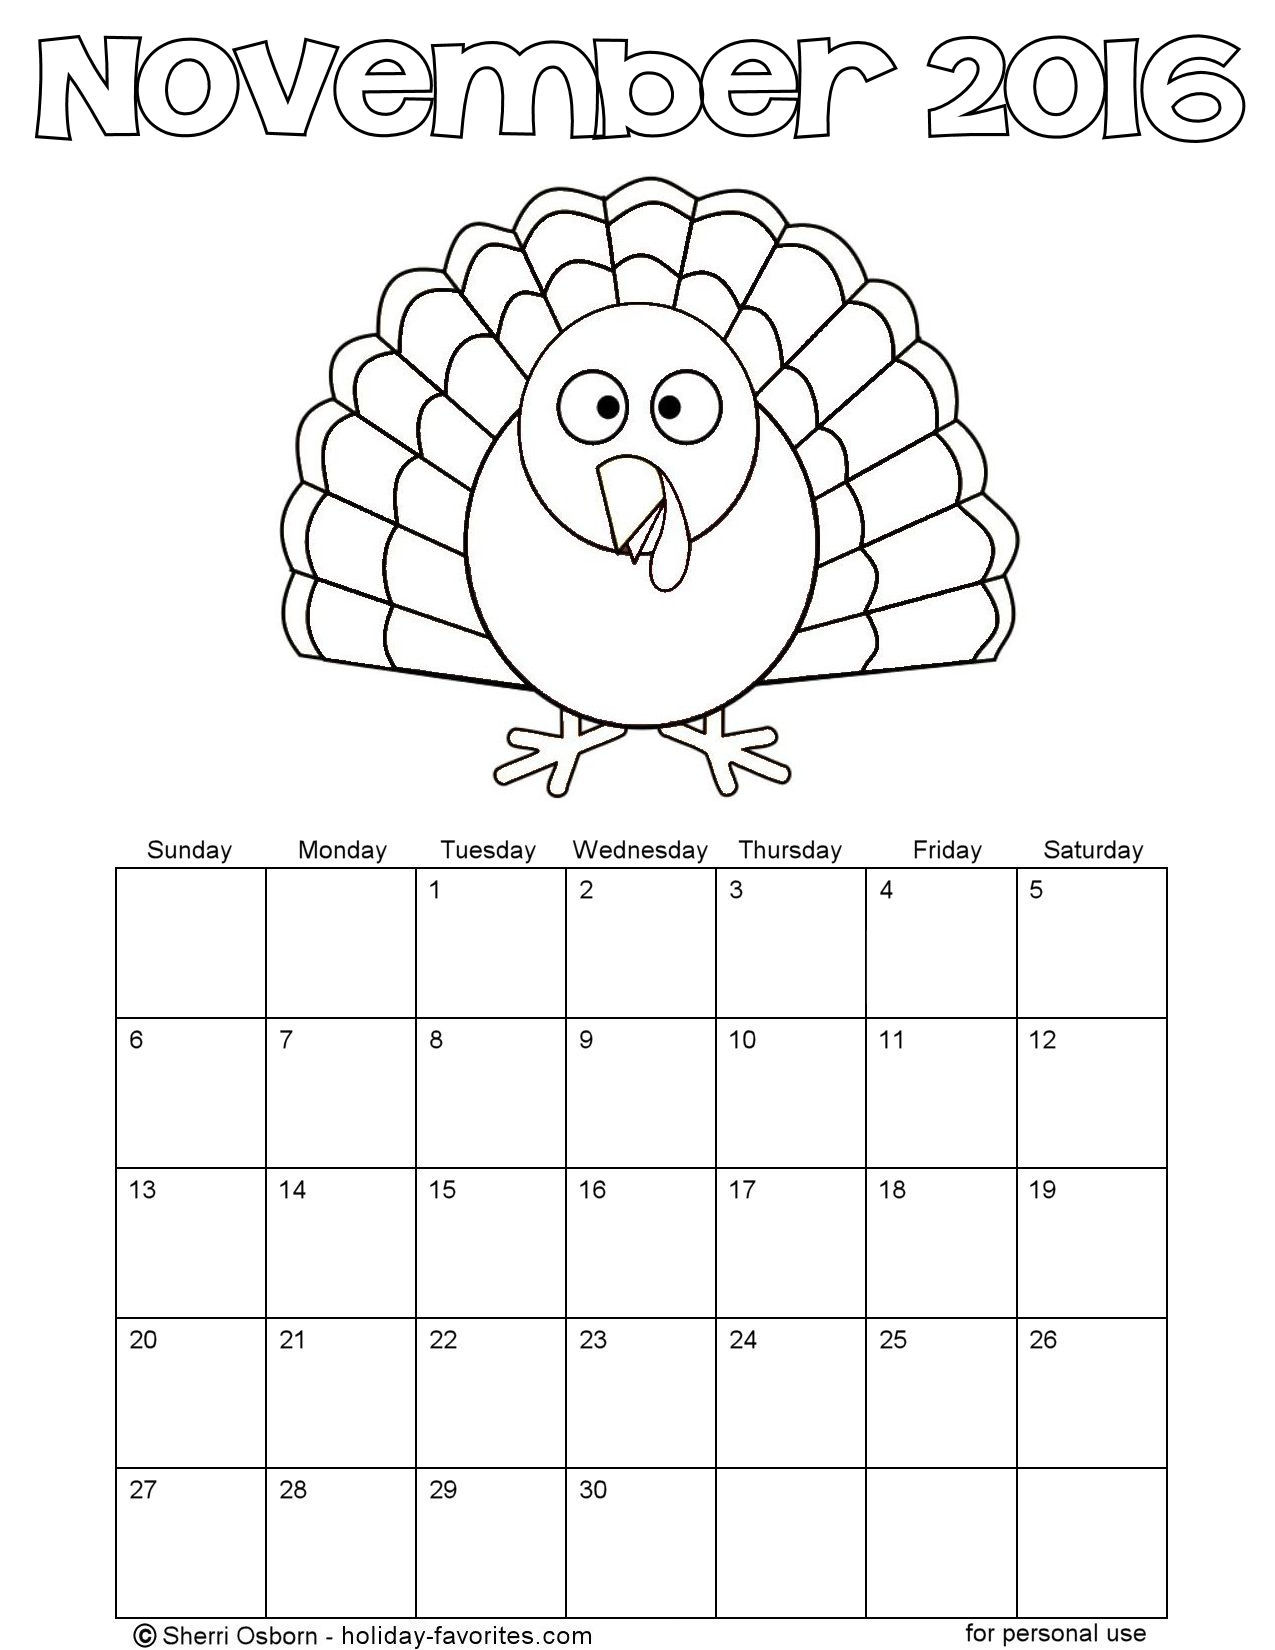 November 2016 Turkey Coloring Calendar Page